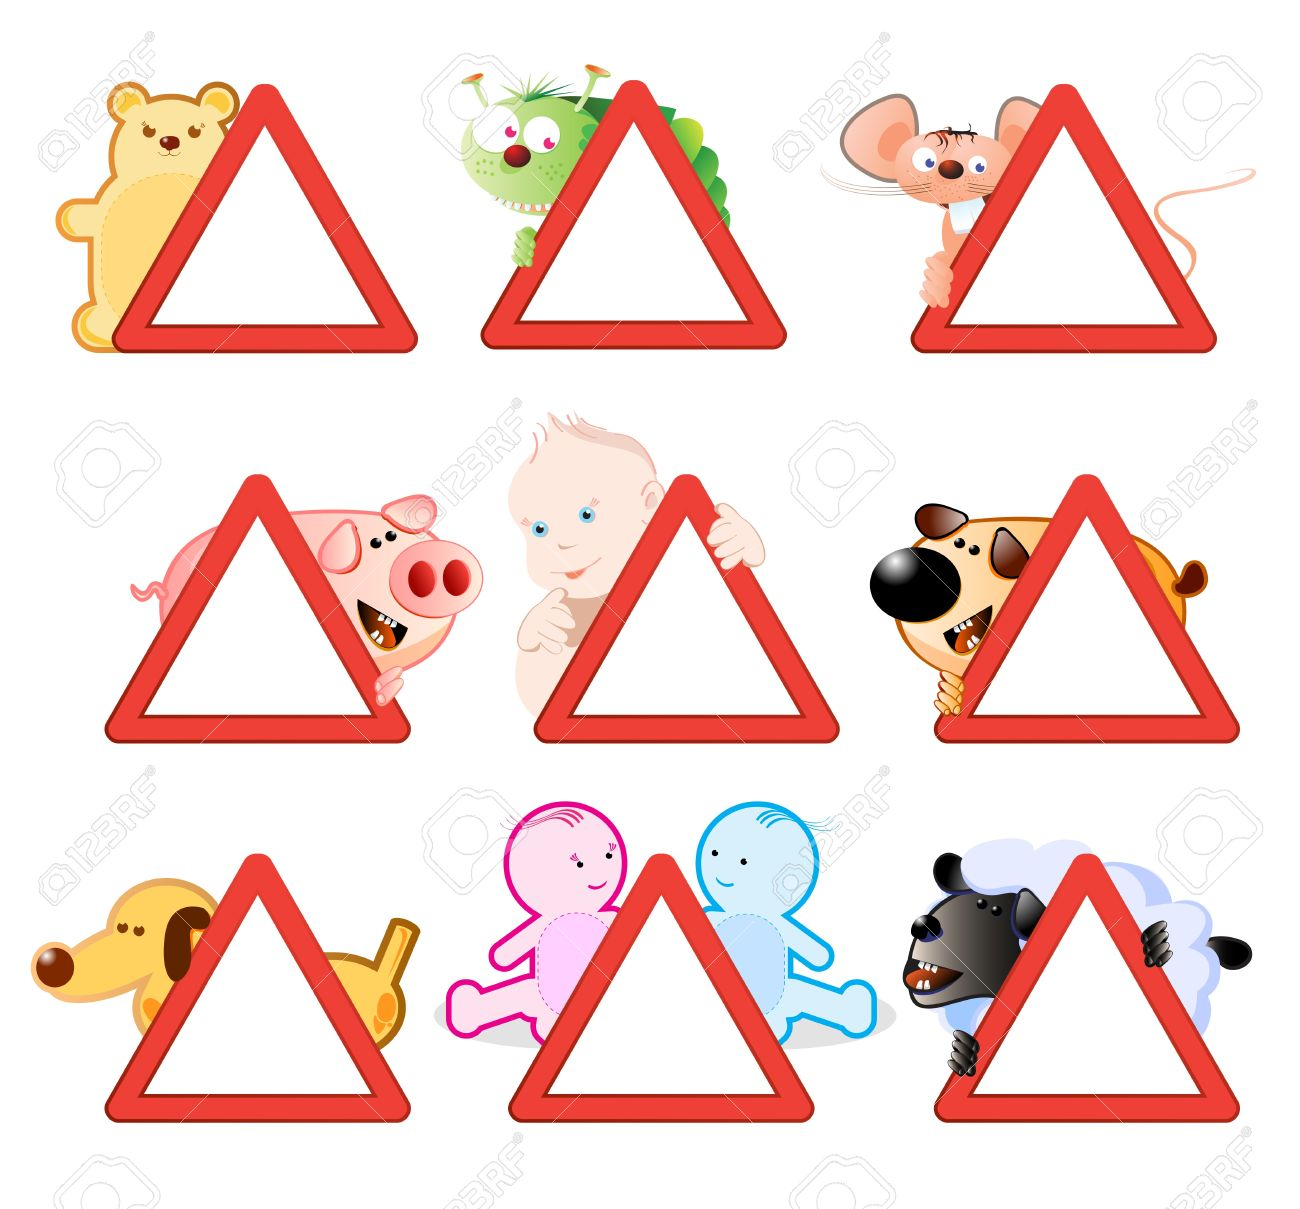 warning signs, funny stickers for cars and other vehicles Stock Vector - 15701678